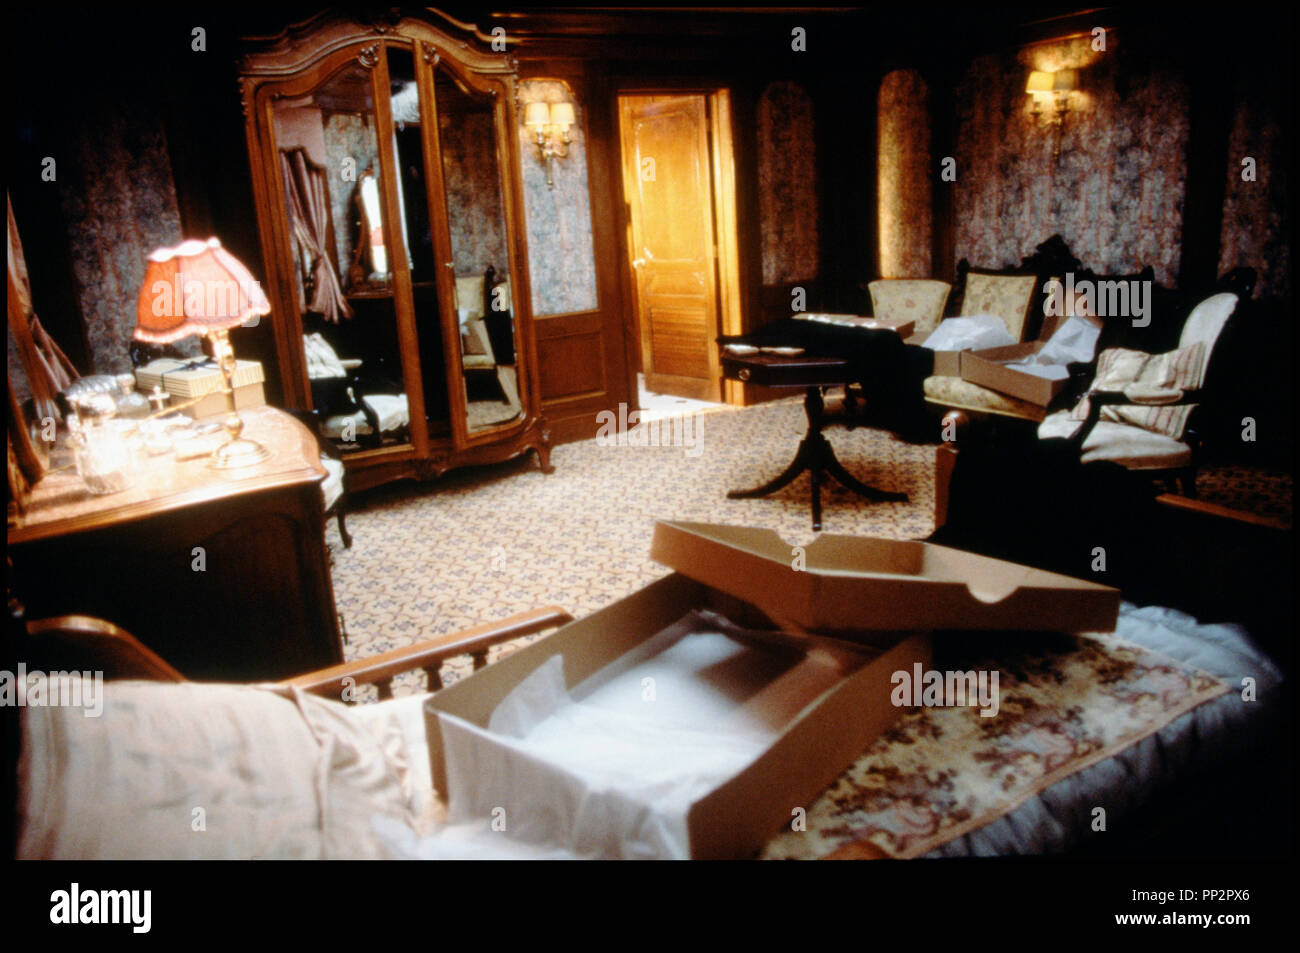 Decoration Chambre Usa Prod Db 20th Century Fox Dr Titanic Titanic De James